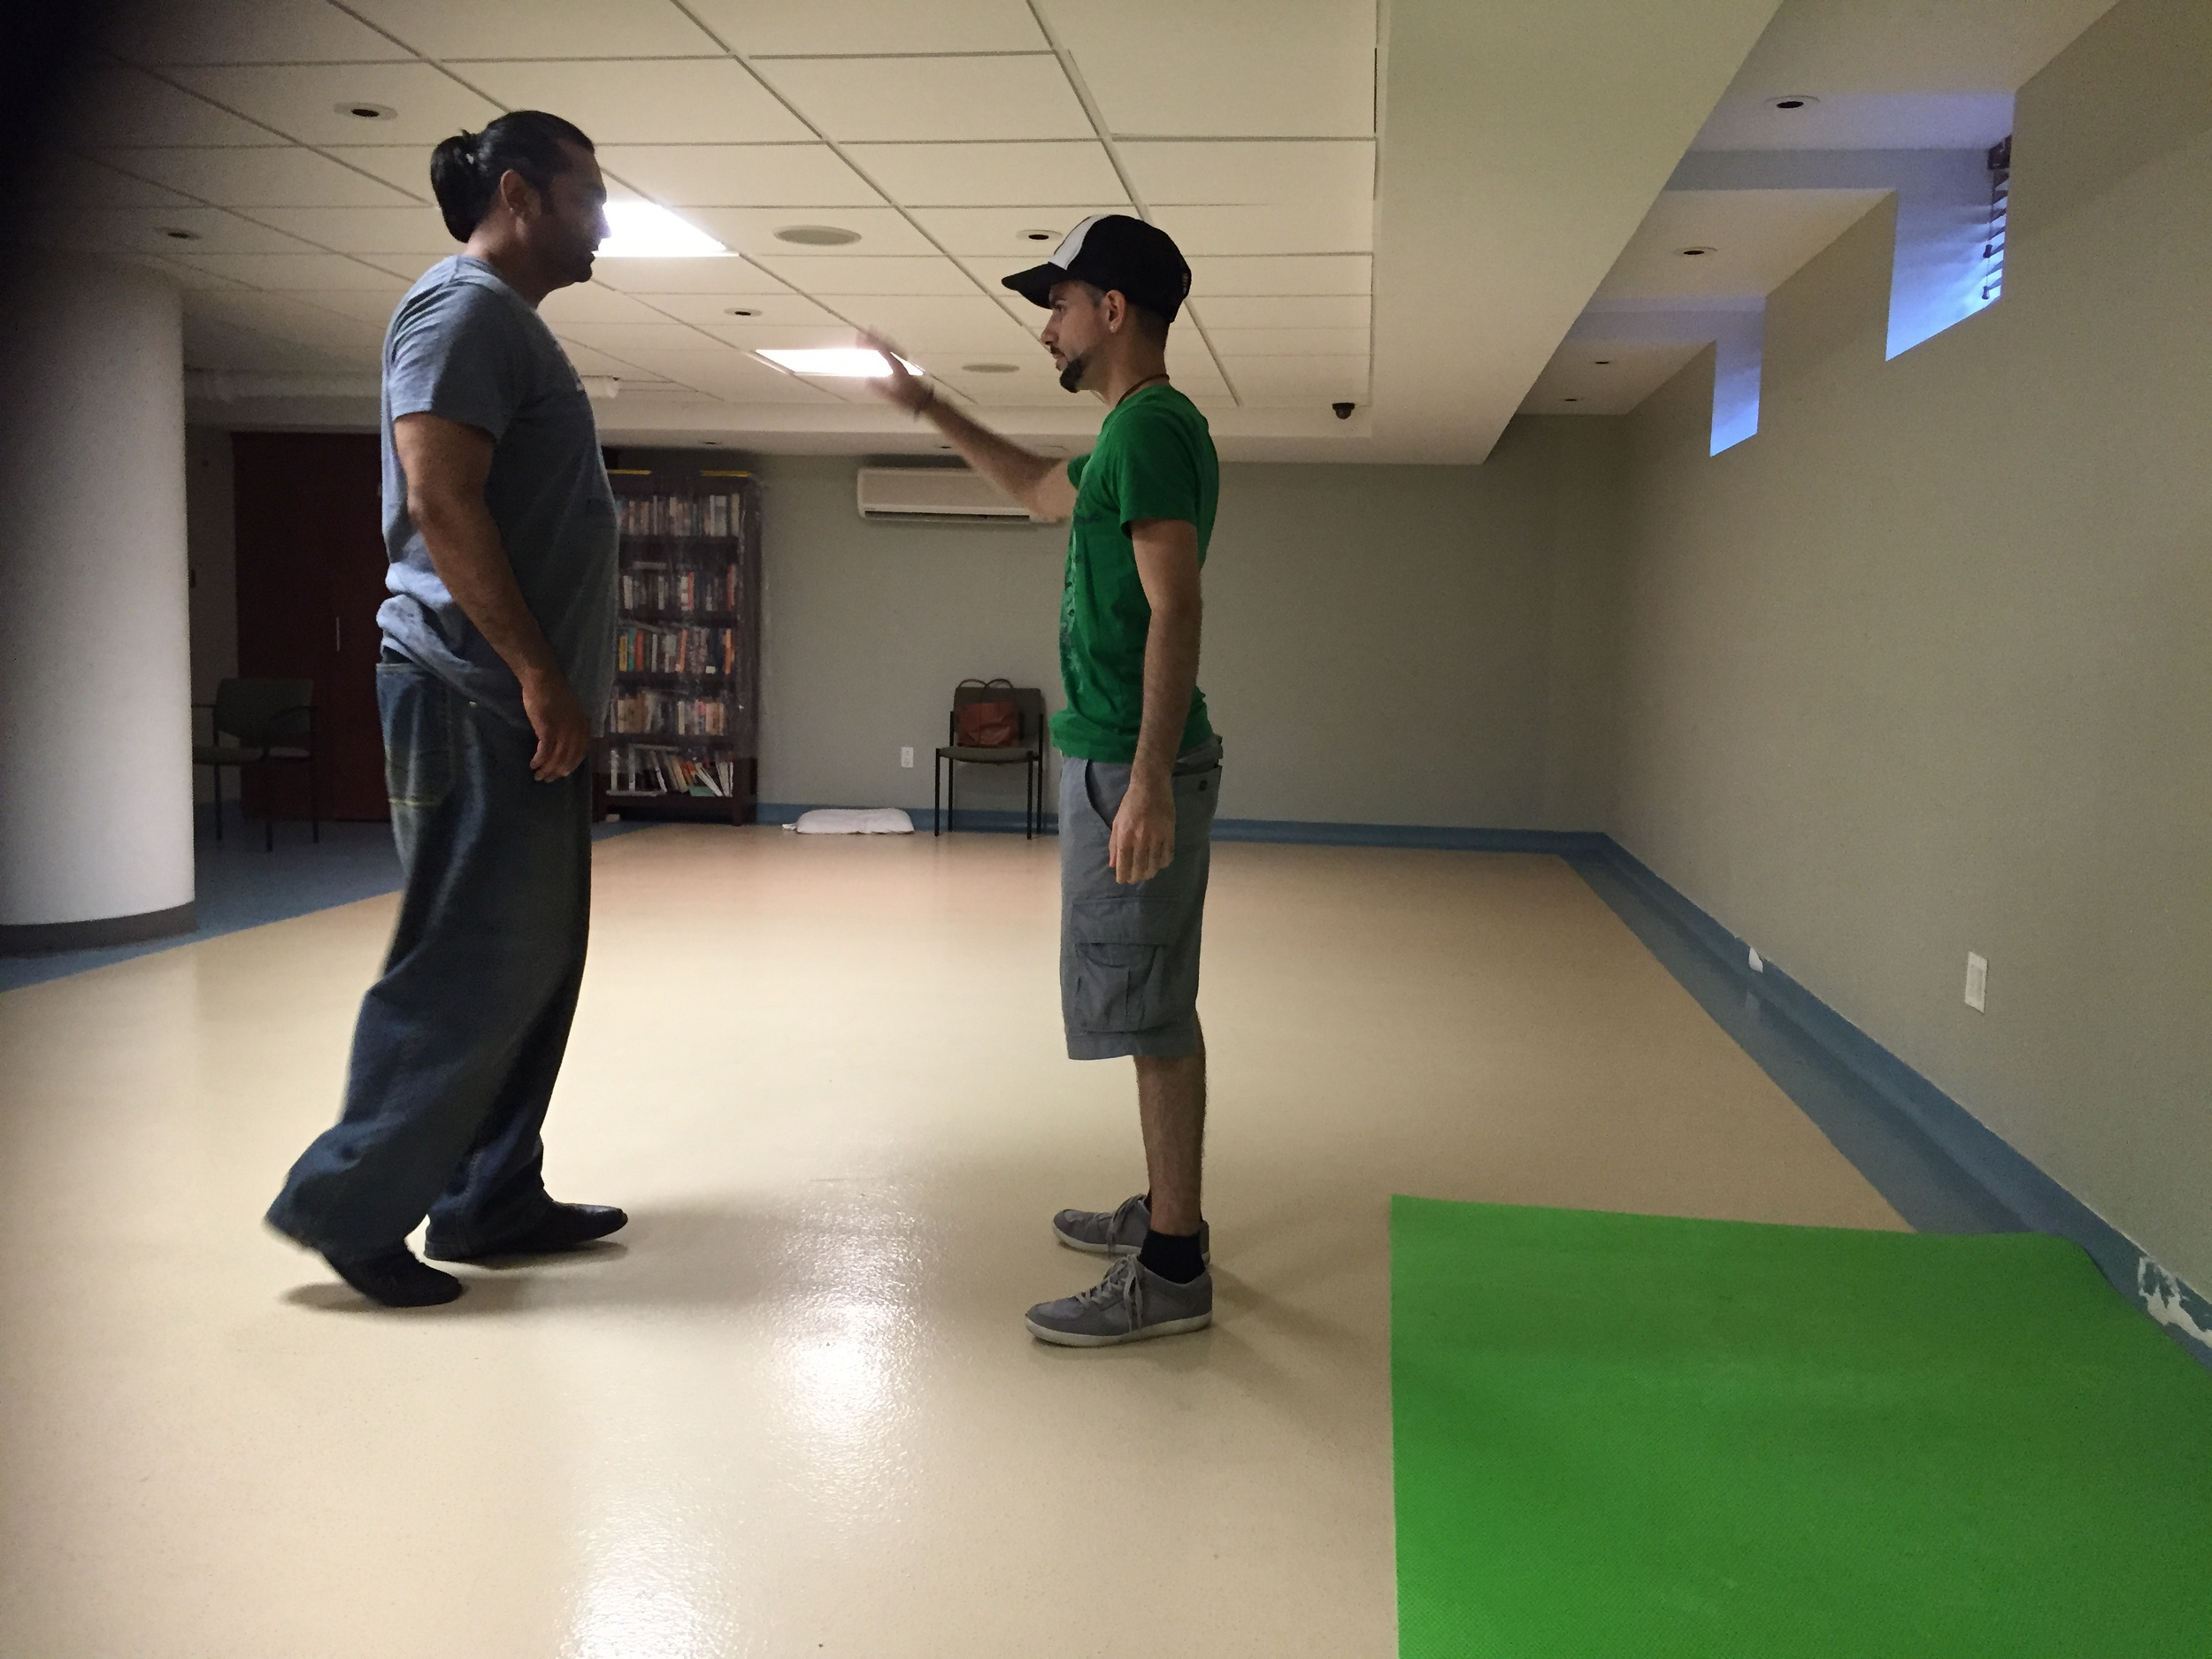 Director Chase Michael Pallante and Stunt Coordinator Alim H. Ali reviewing over structured stunts for the actors to prepare.